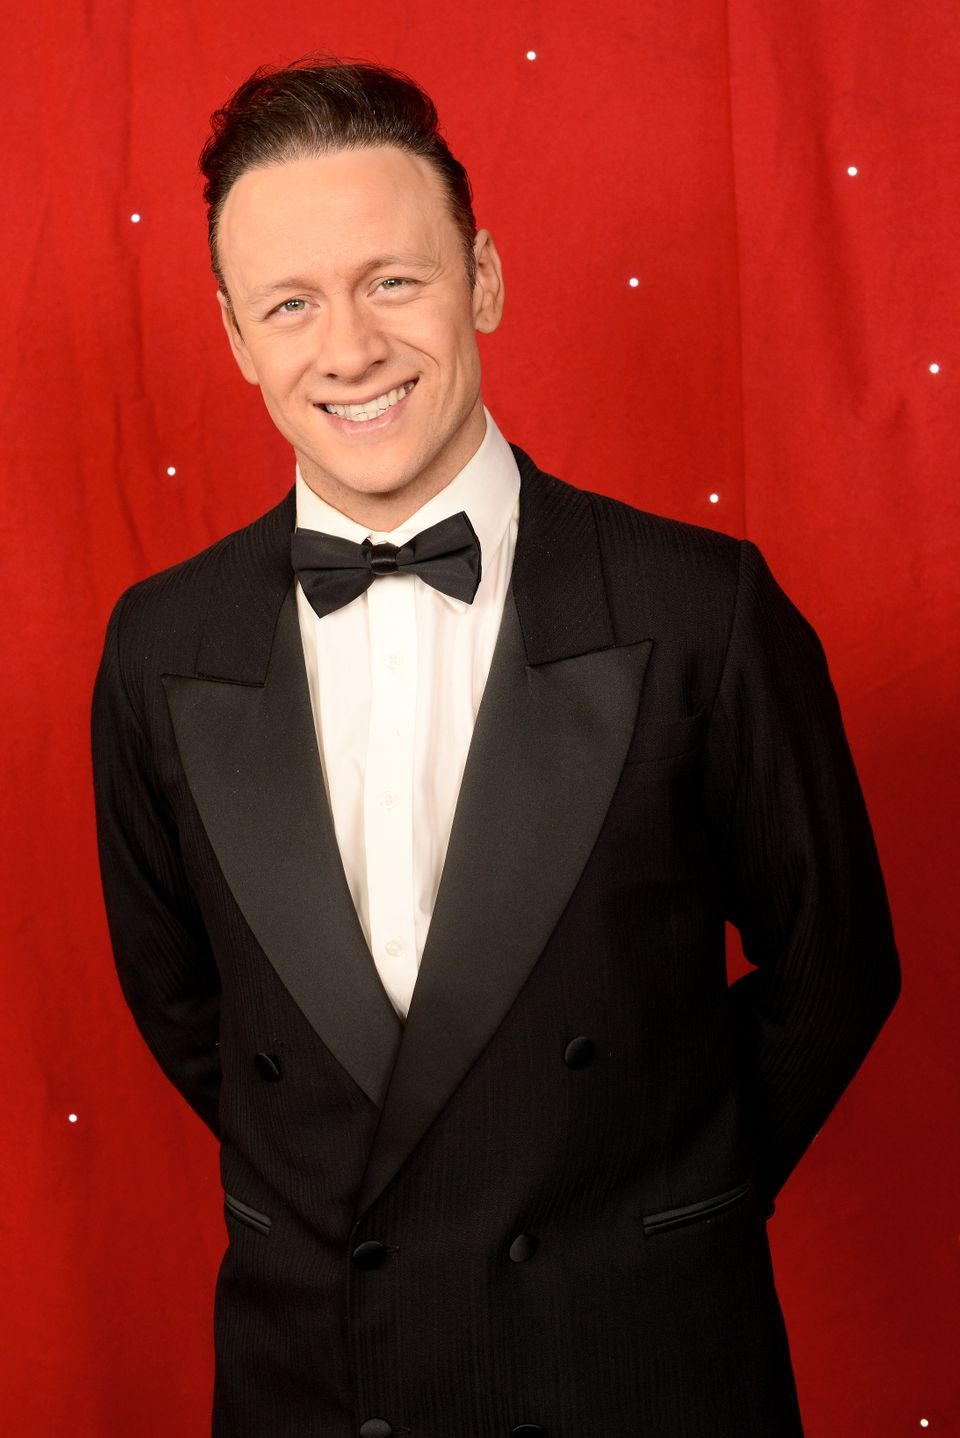 Kevin backstage at Strictly Come Dancing Live! in